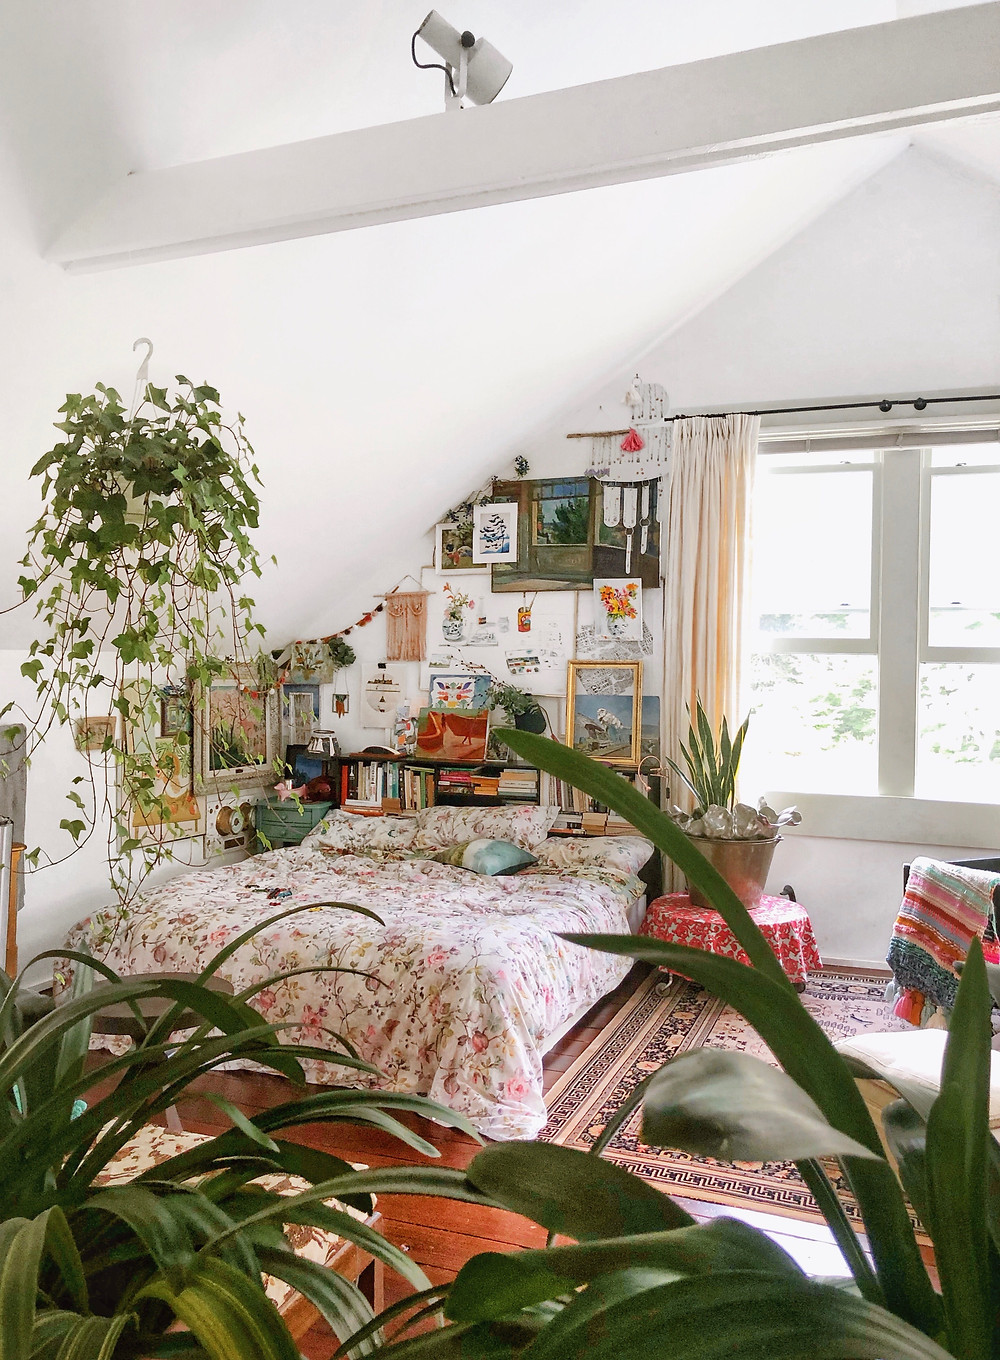 Loft bedroom with plants and gallery wall